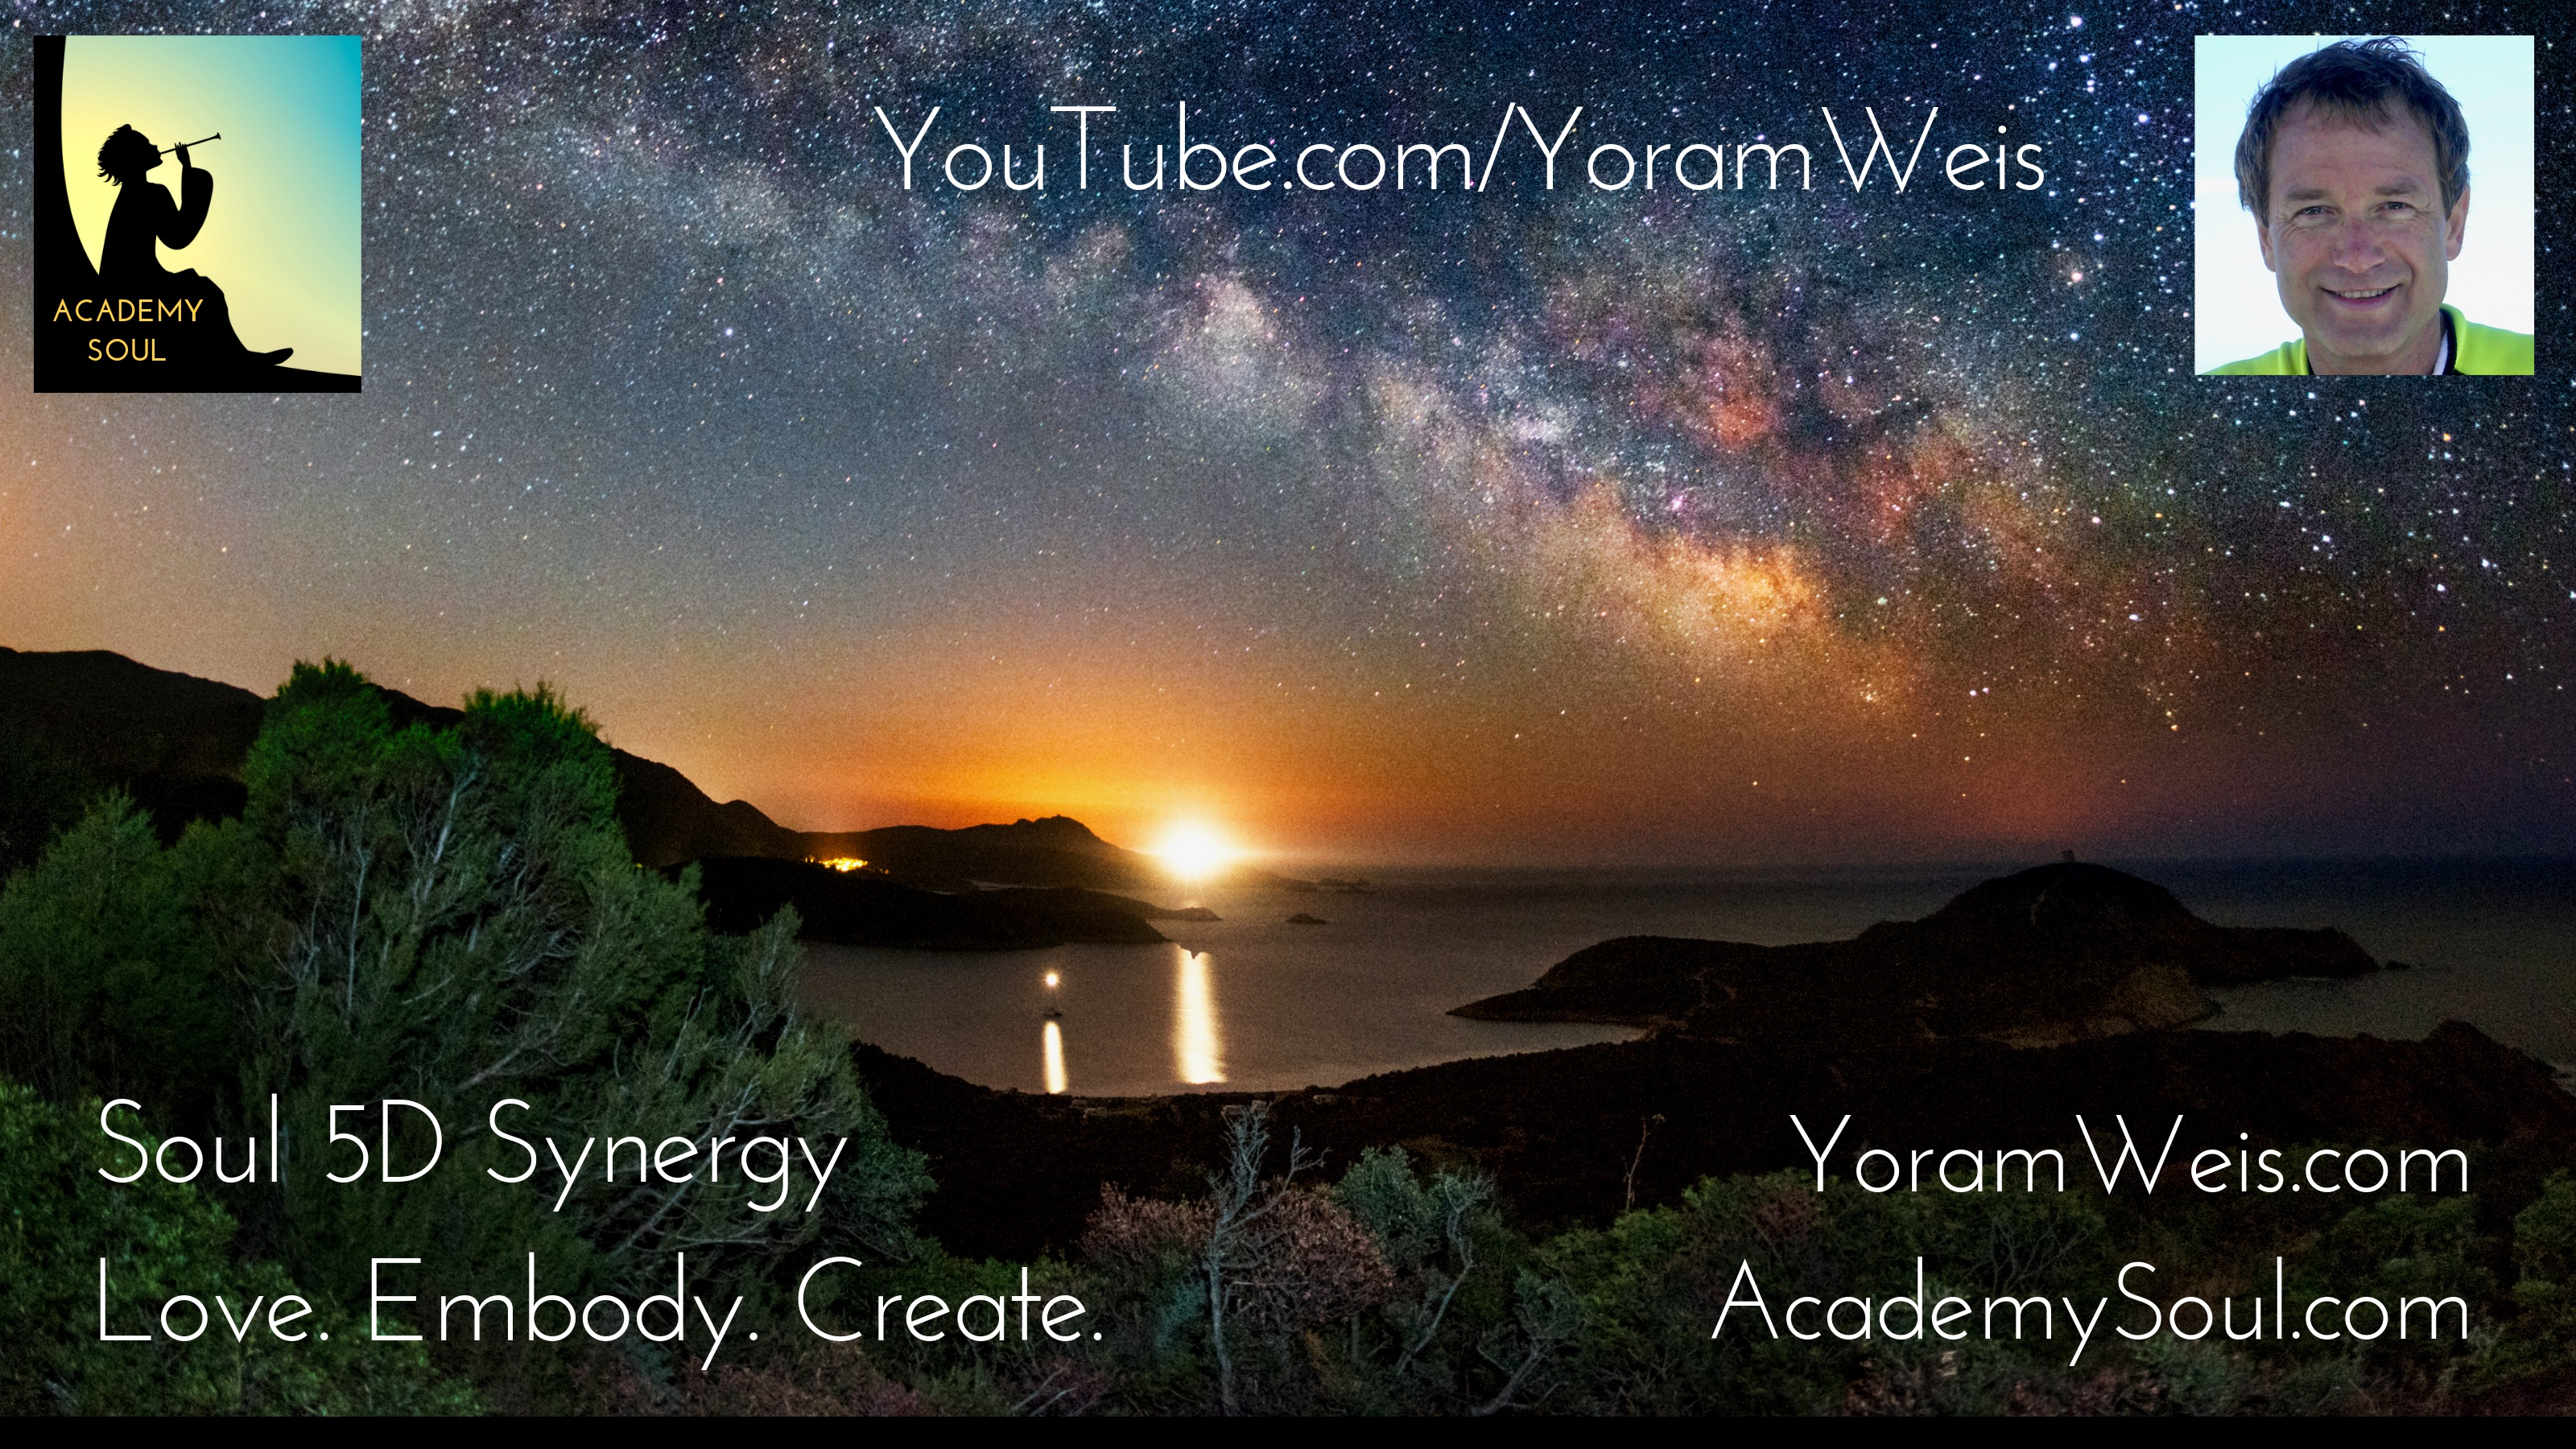 Link to YouTube Videos by Yoram Weis